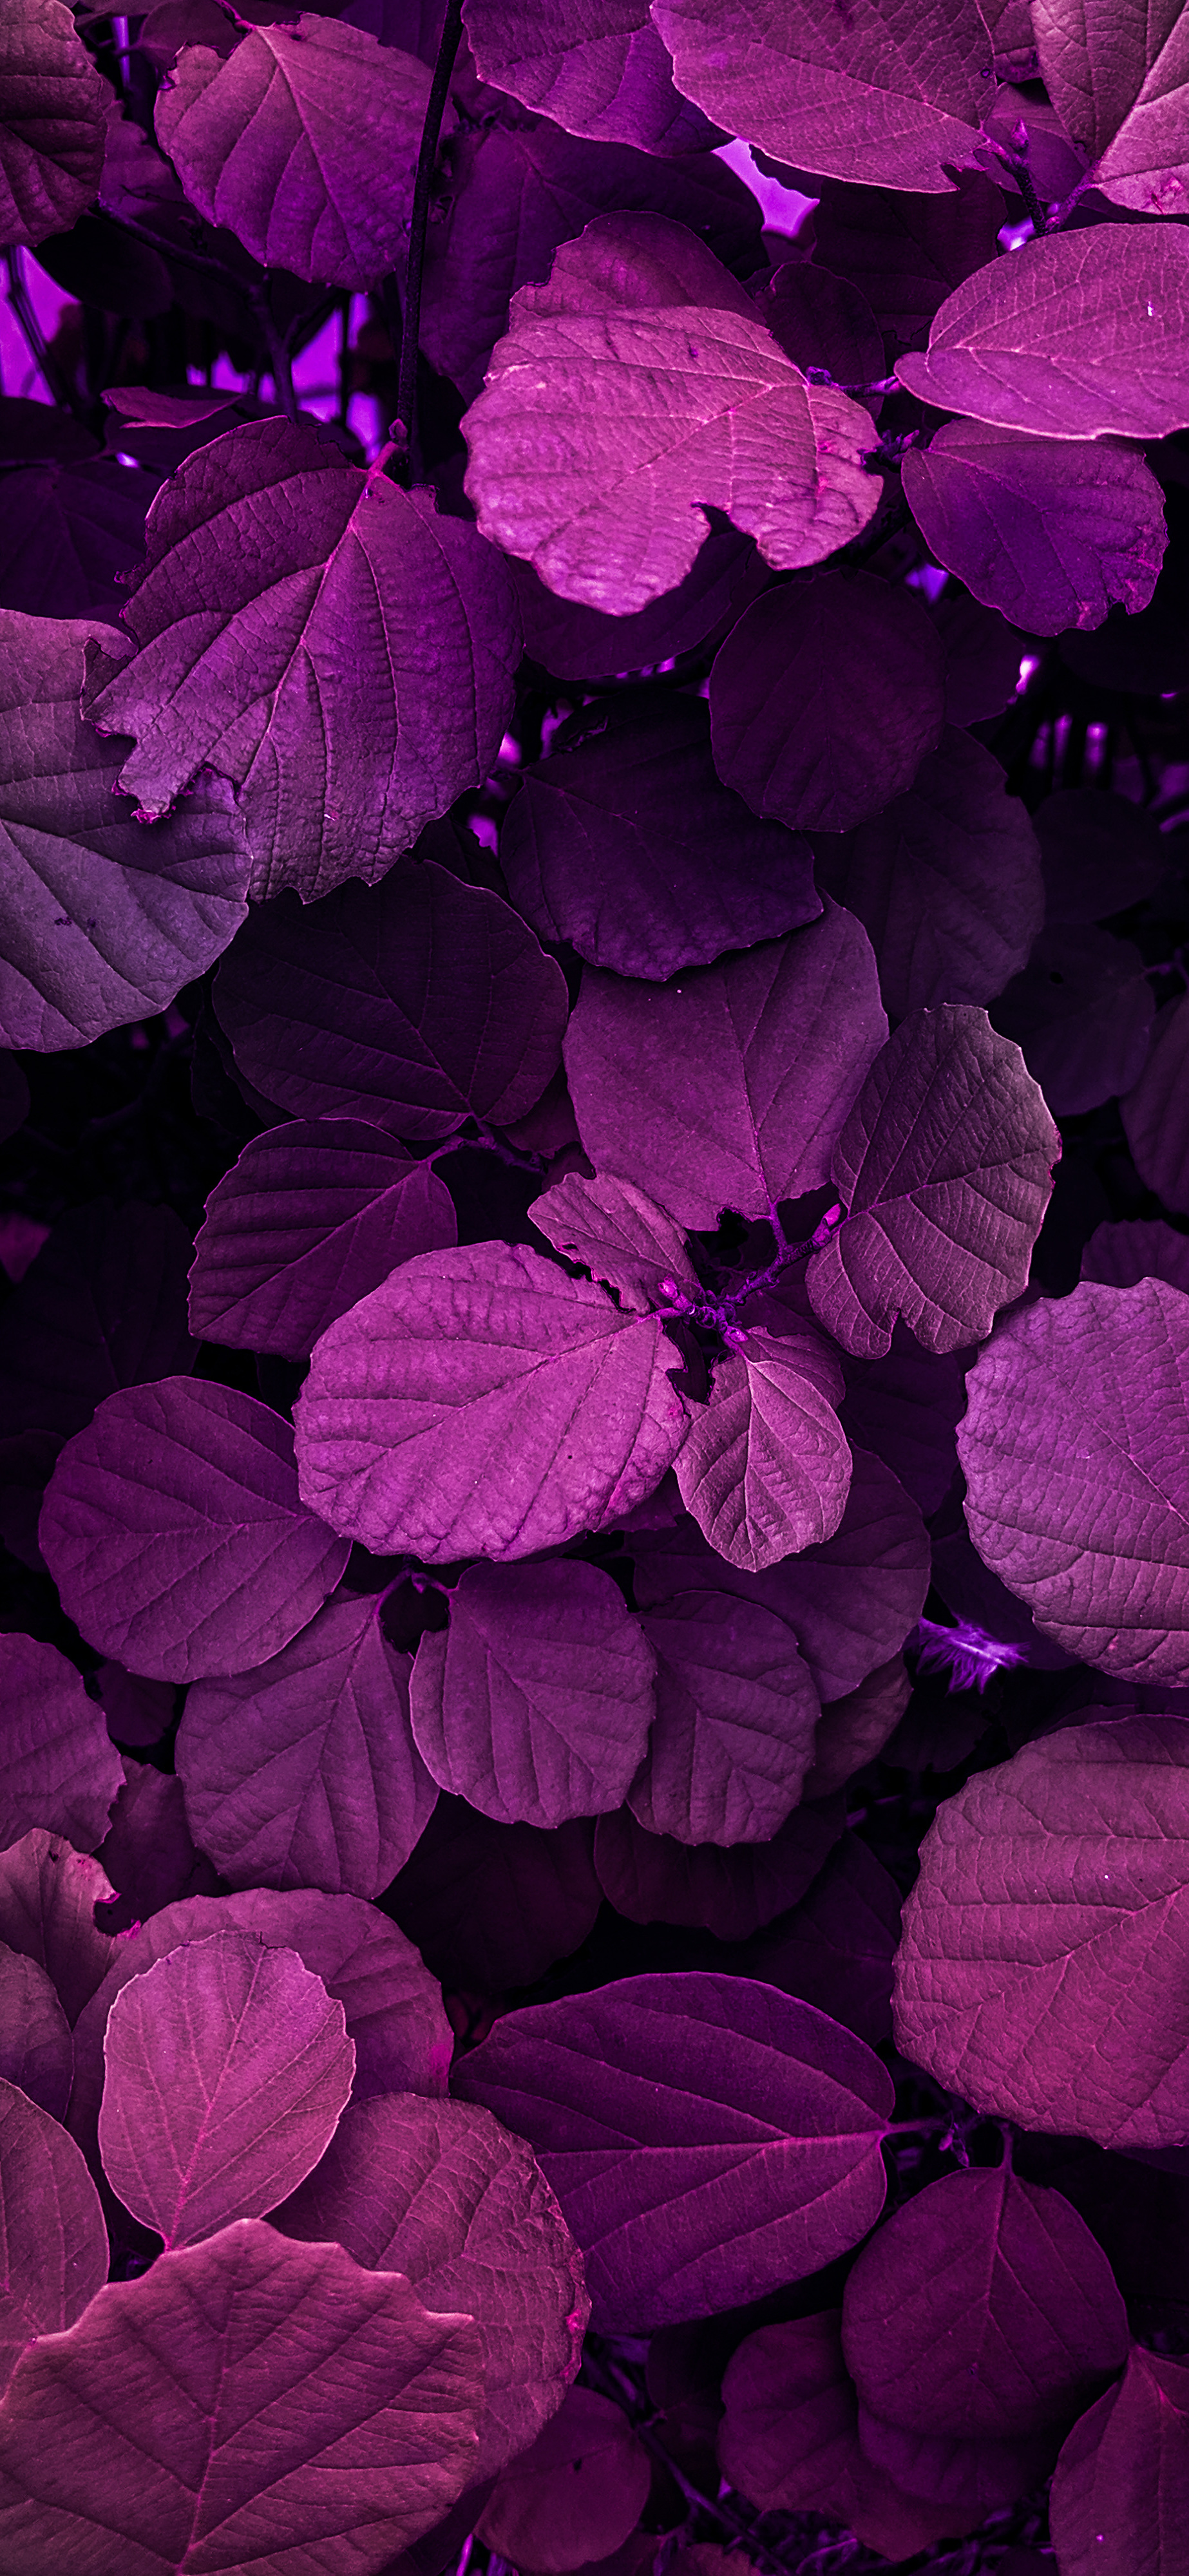 Nature photography iPhone wallpaper wallsbyjfl magenta leaves